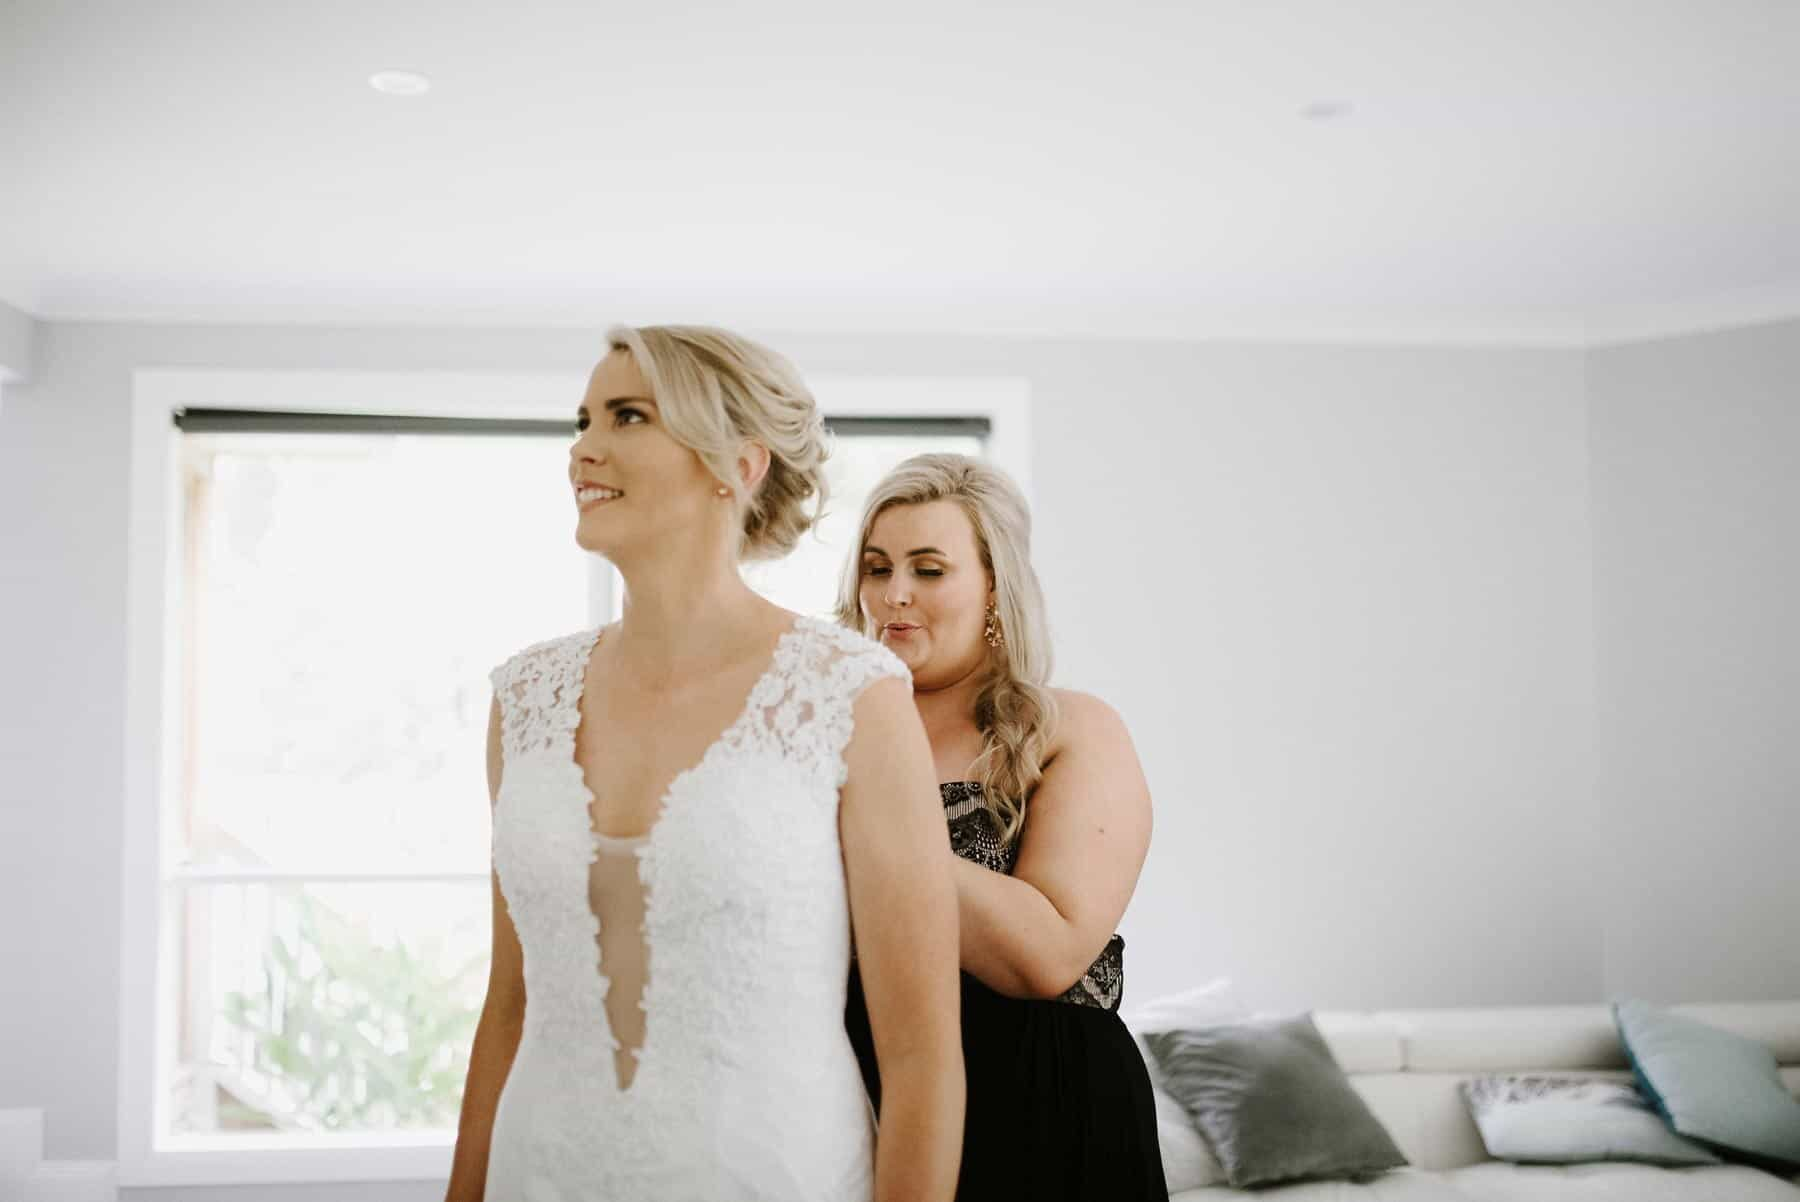 Yarra Valley winery wedding at Riverstone Estate - photography by Enchanted Weddings